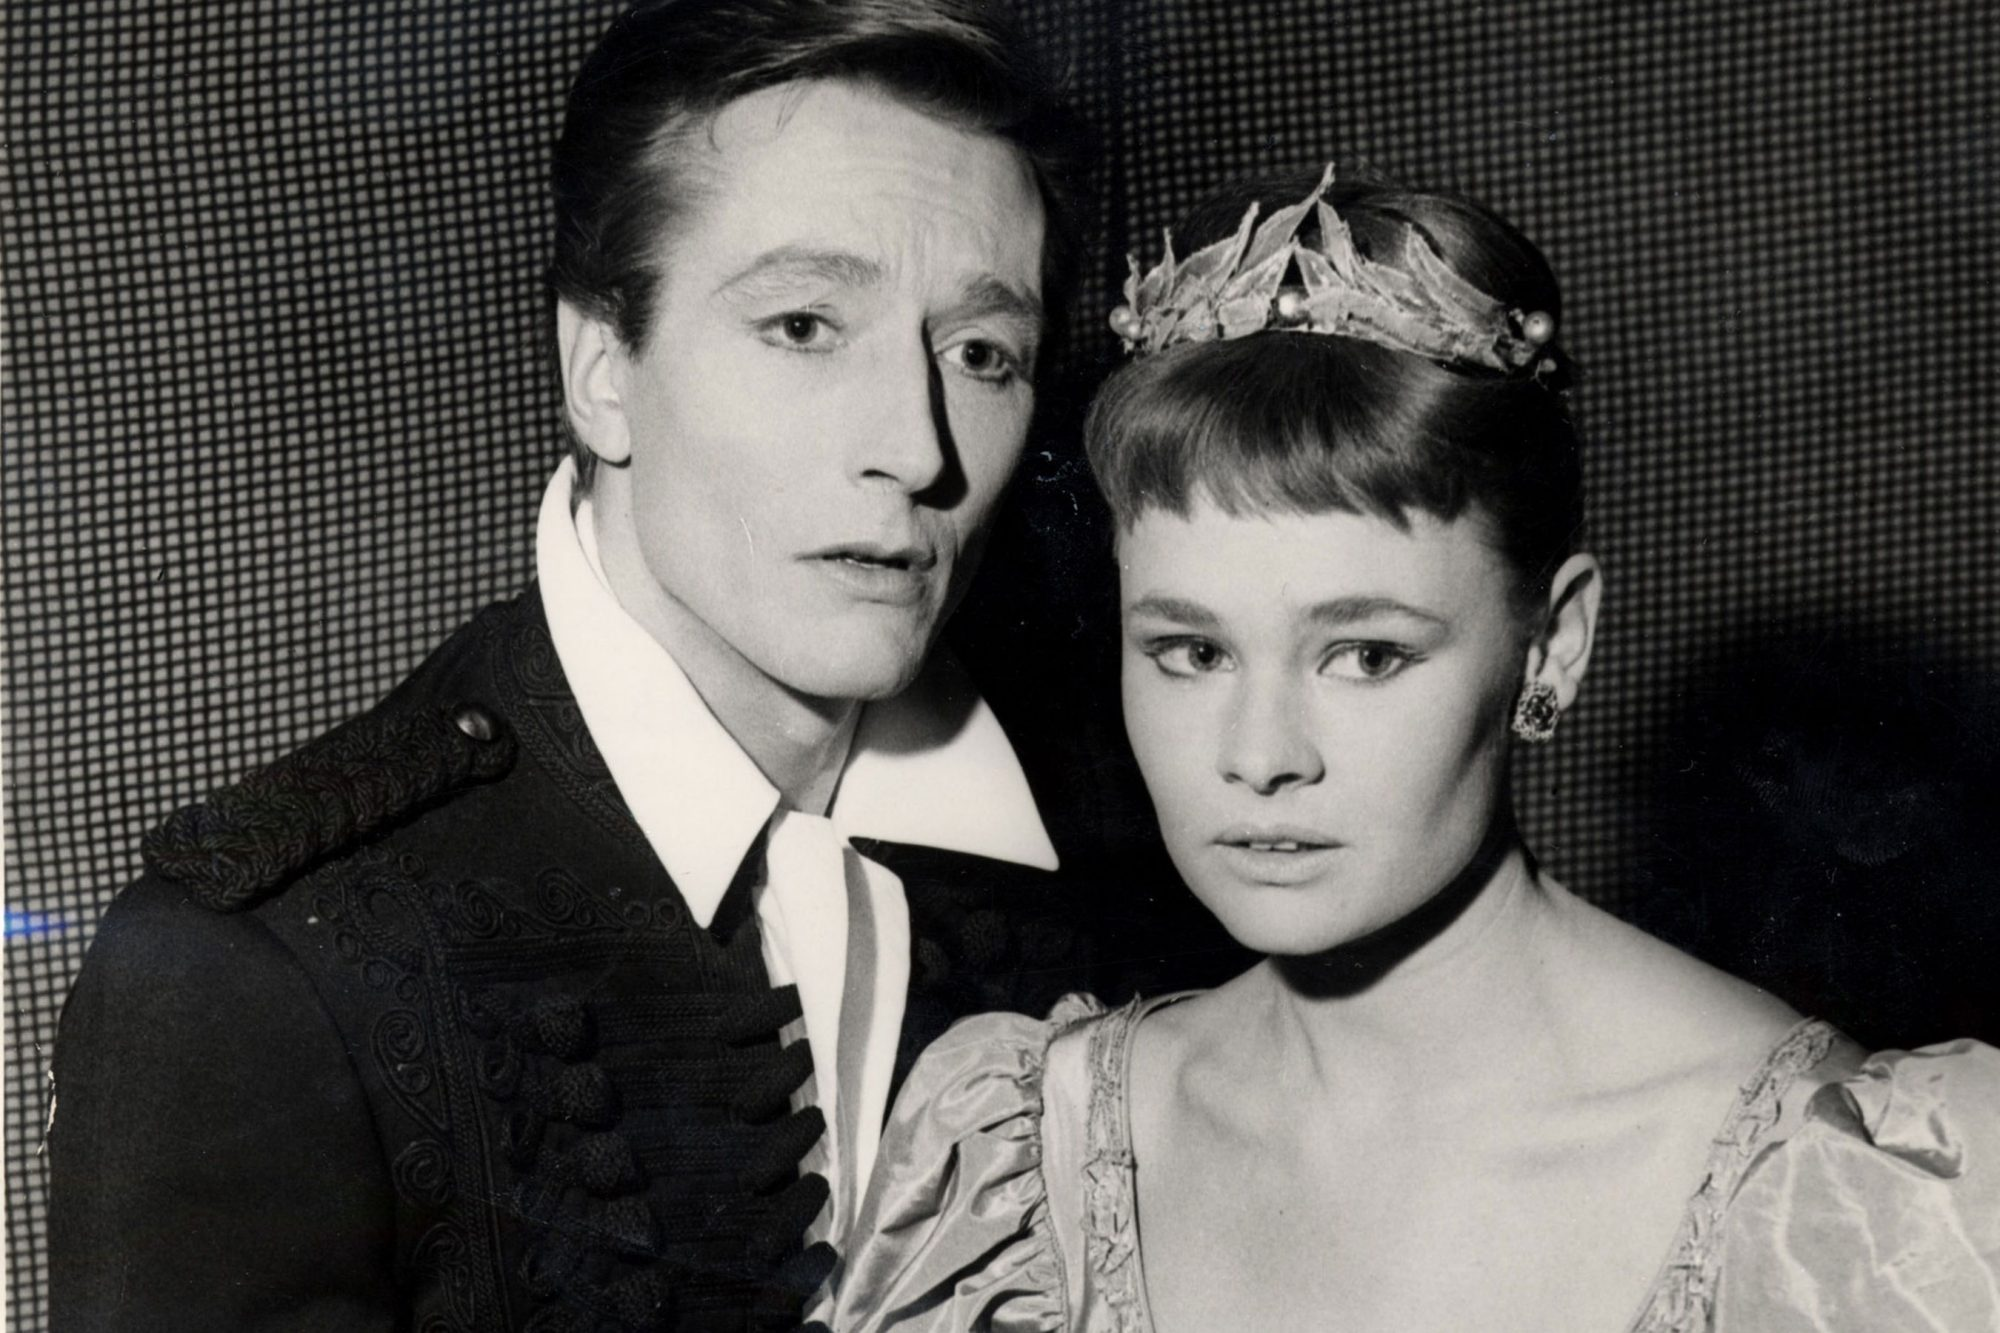 Dame Judi Dench And John Neville At The Old Vic Theatre London As 'hamlet' And 'orphelia'